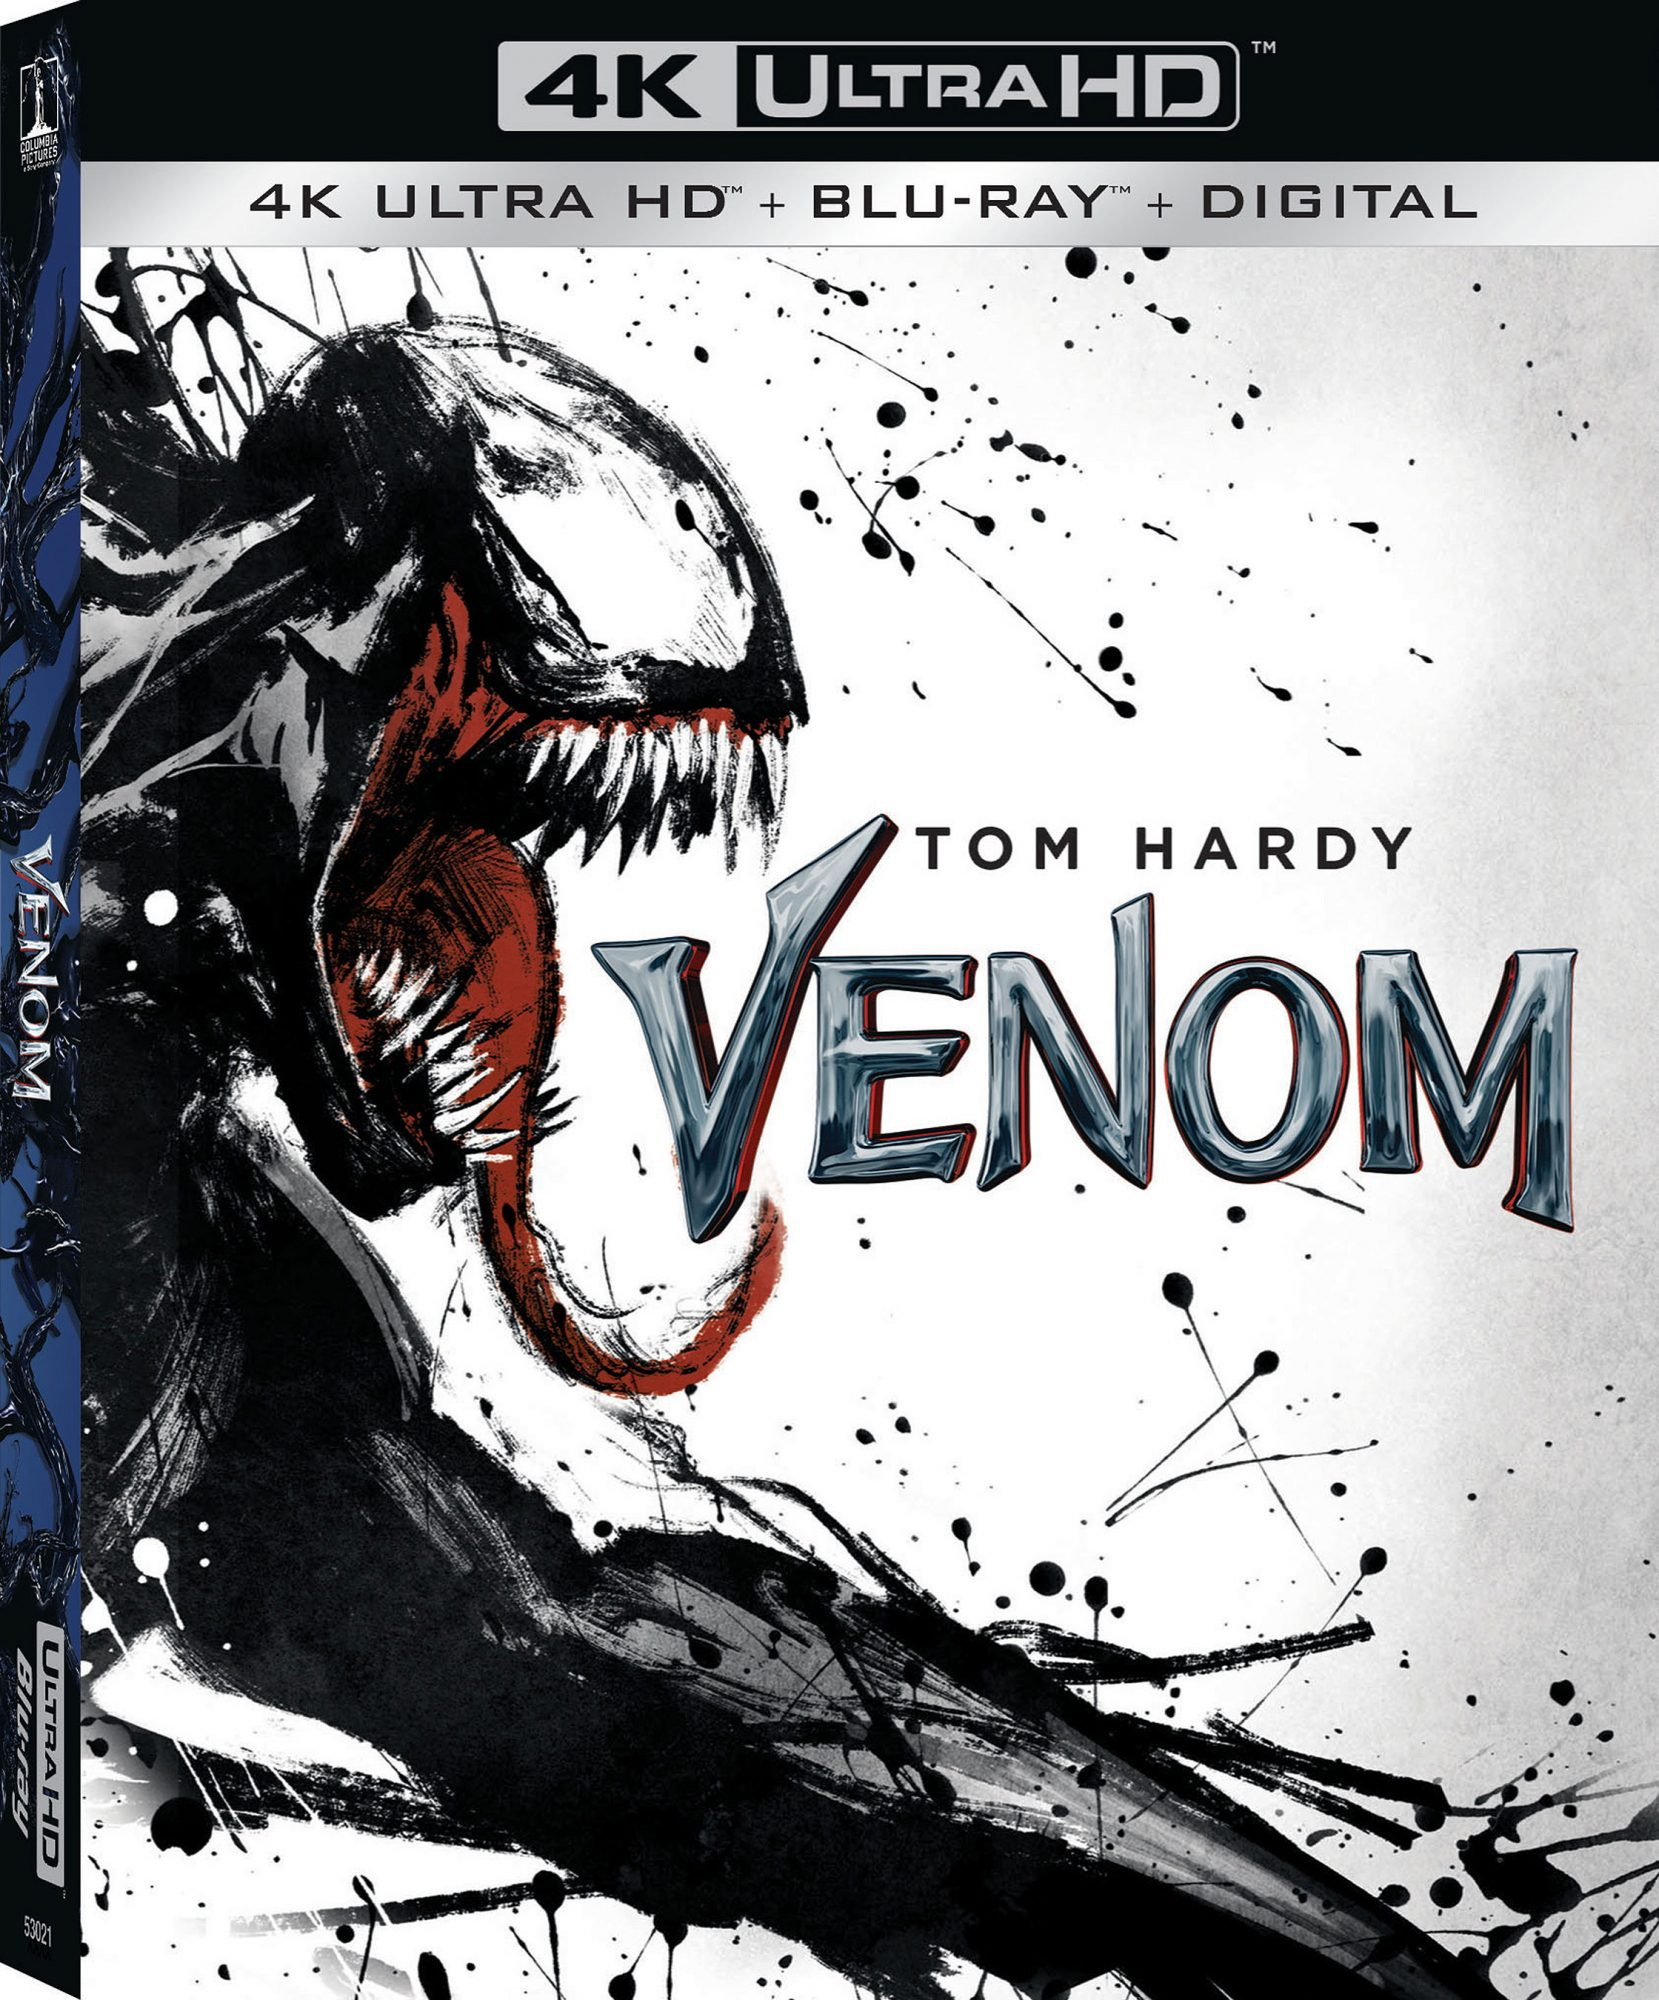 Venom Blu-ray box artworkCredit: Sony Pictures Home Entertainment